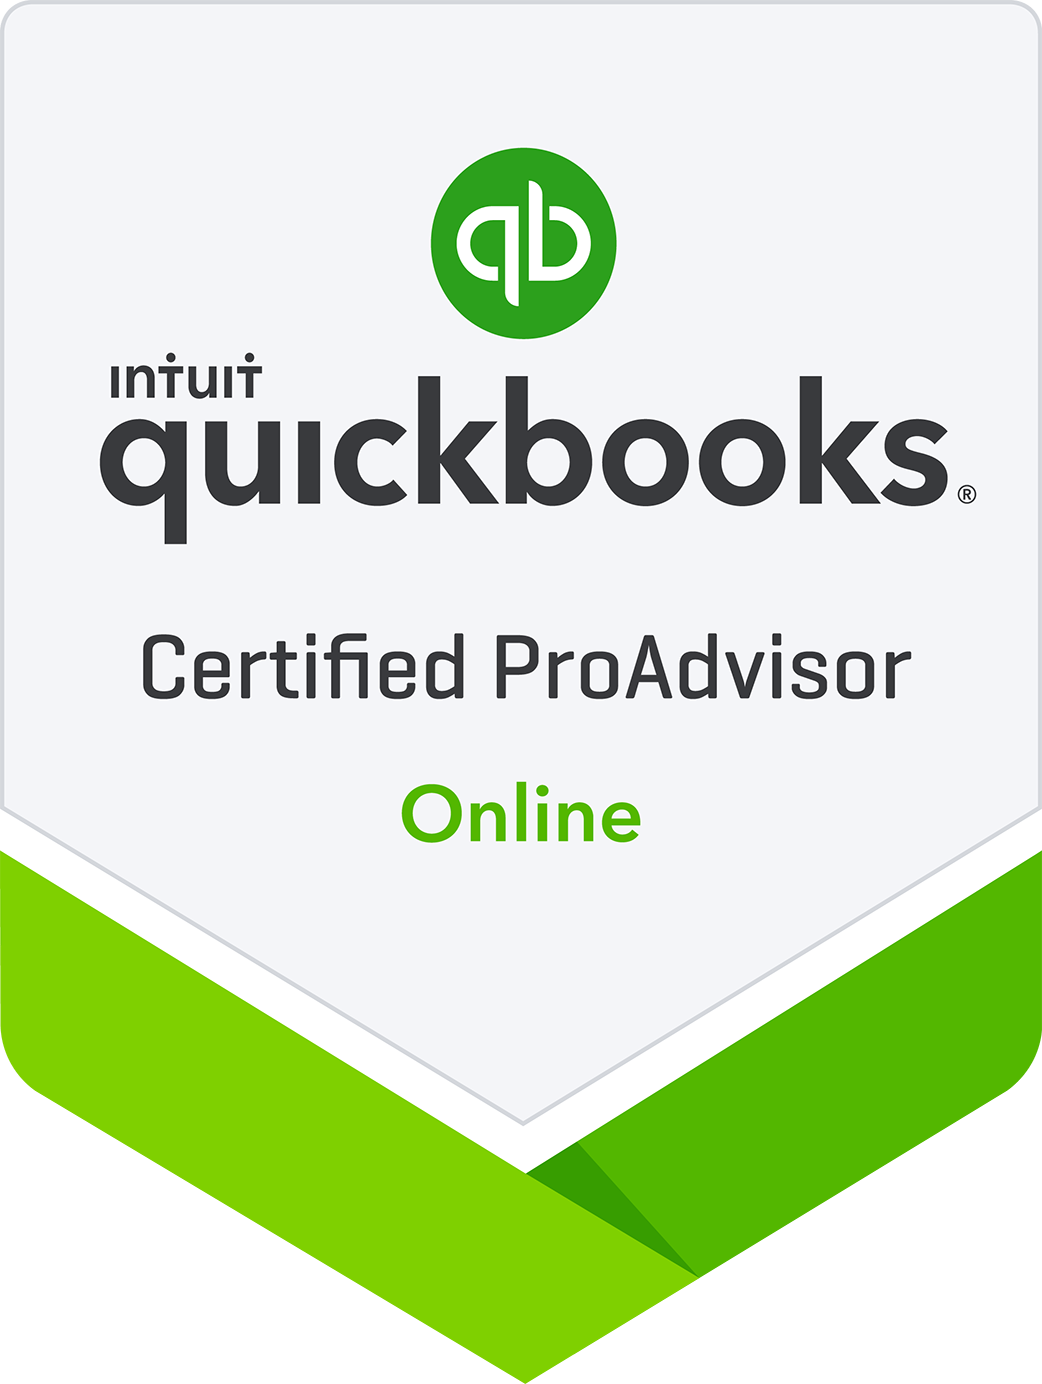 Certified QuickBooks®  Proadvisor Online in Lake City, FL and Gainesville, FL